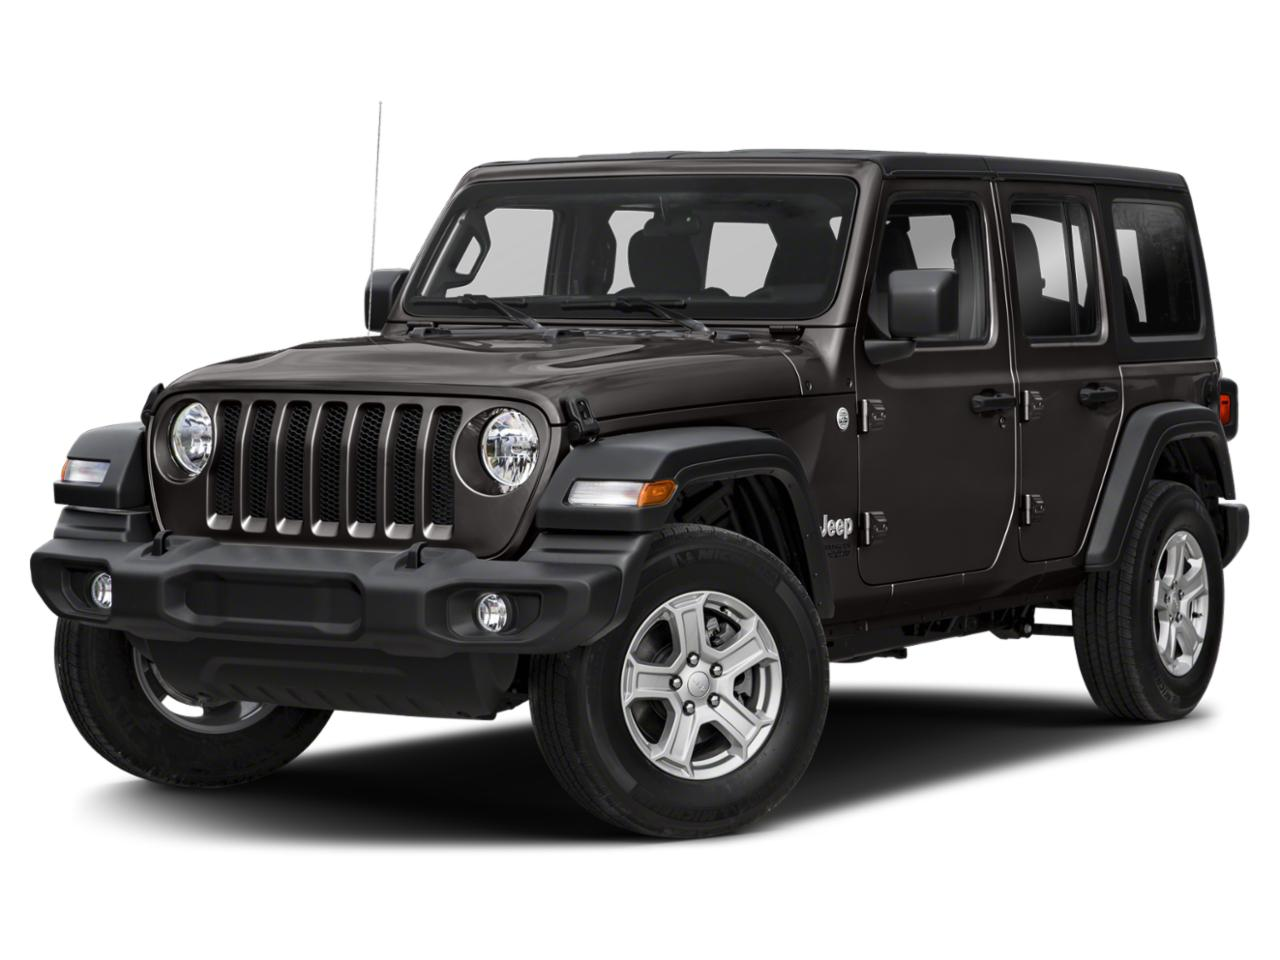 2020 Jeep Wrangler Unlimited Vehicle Photo in Saginaw, MI 48609